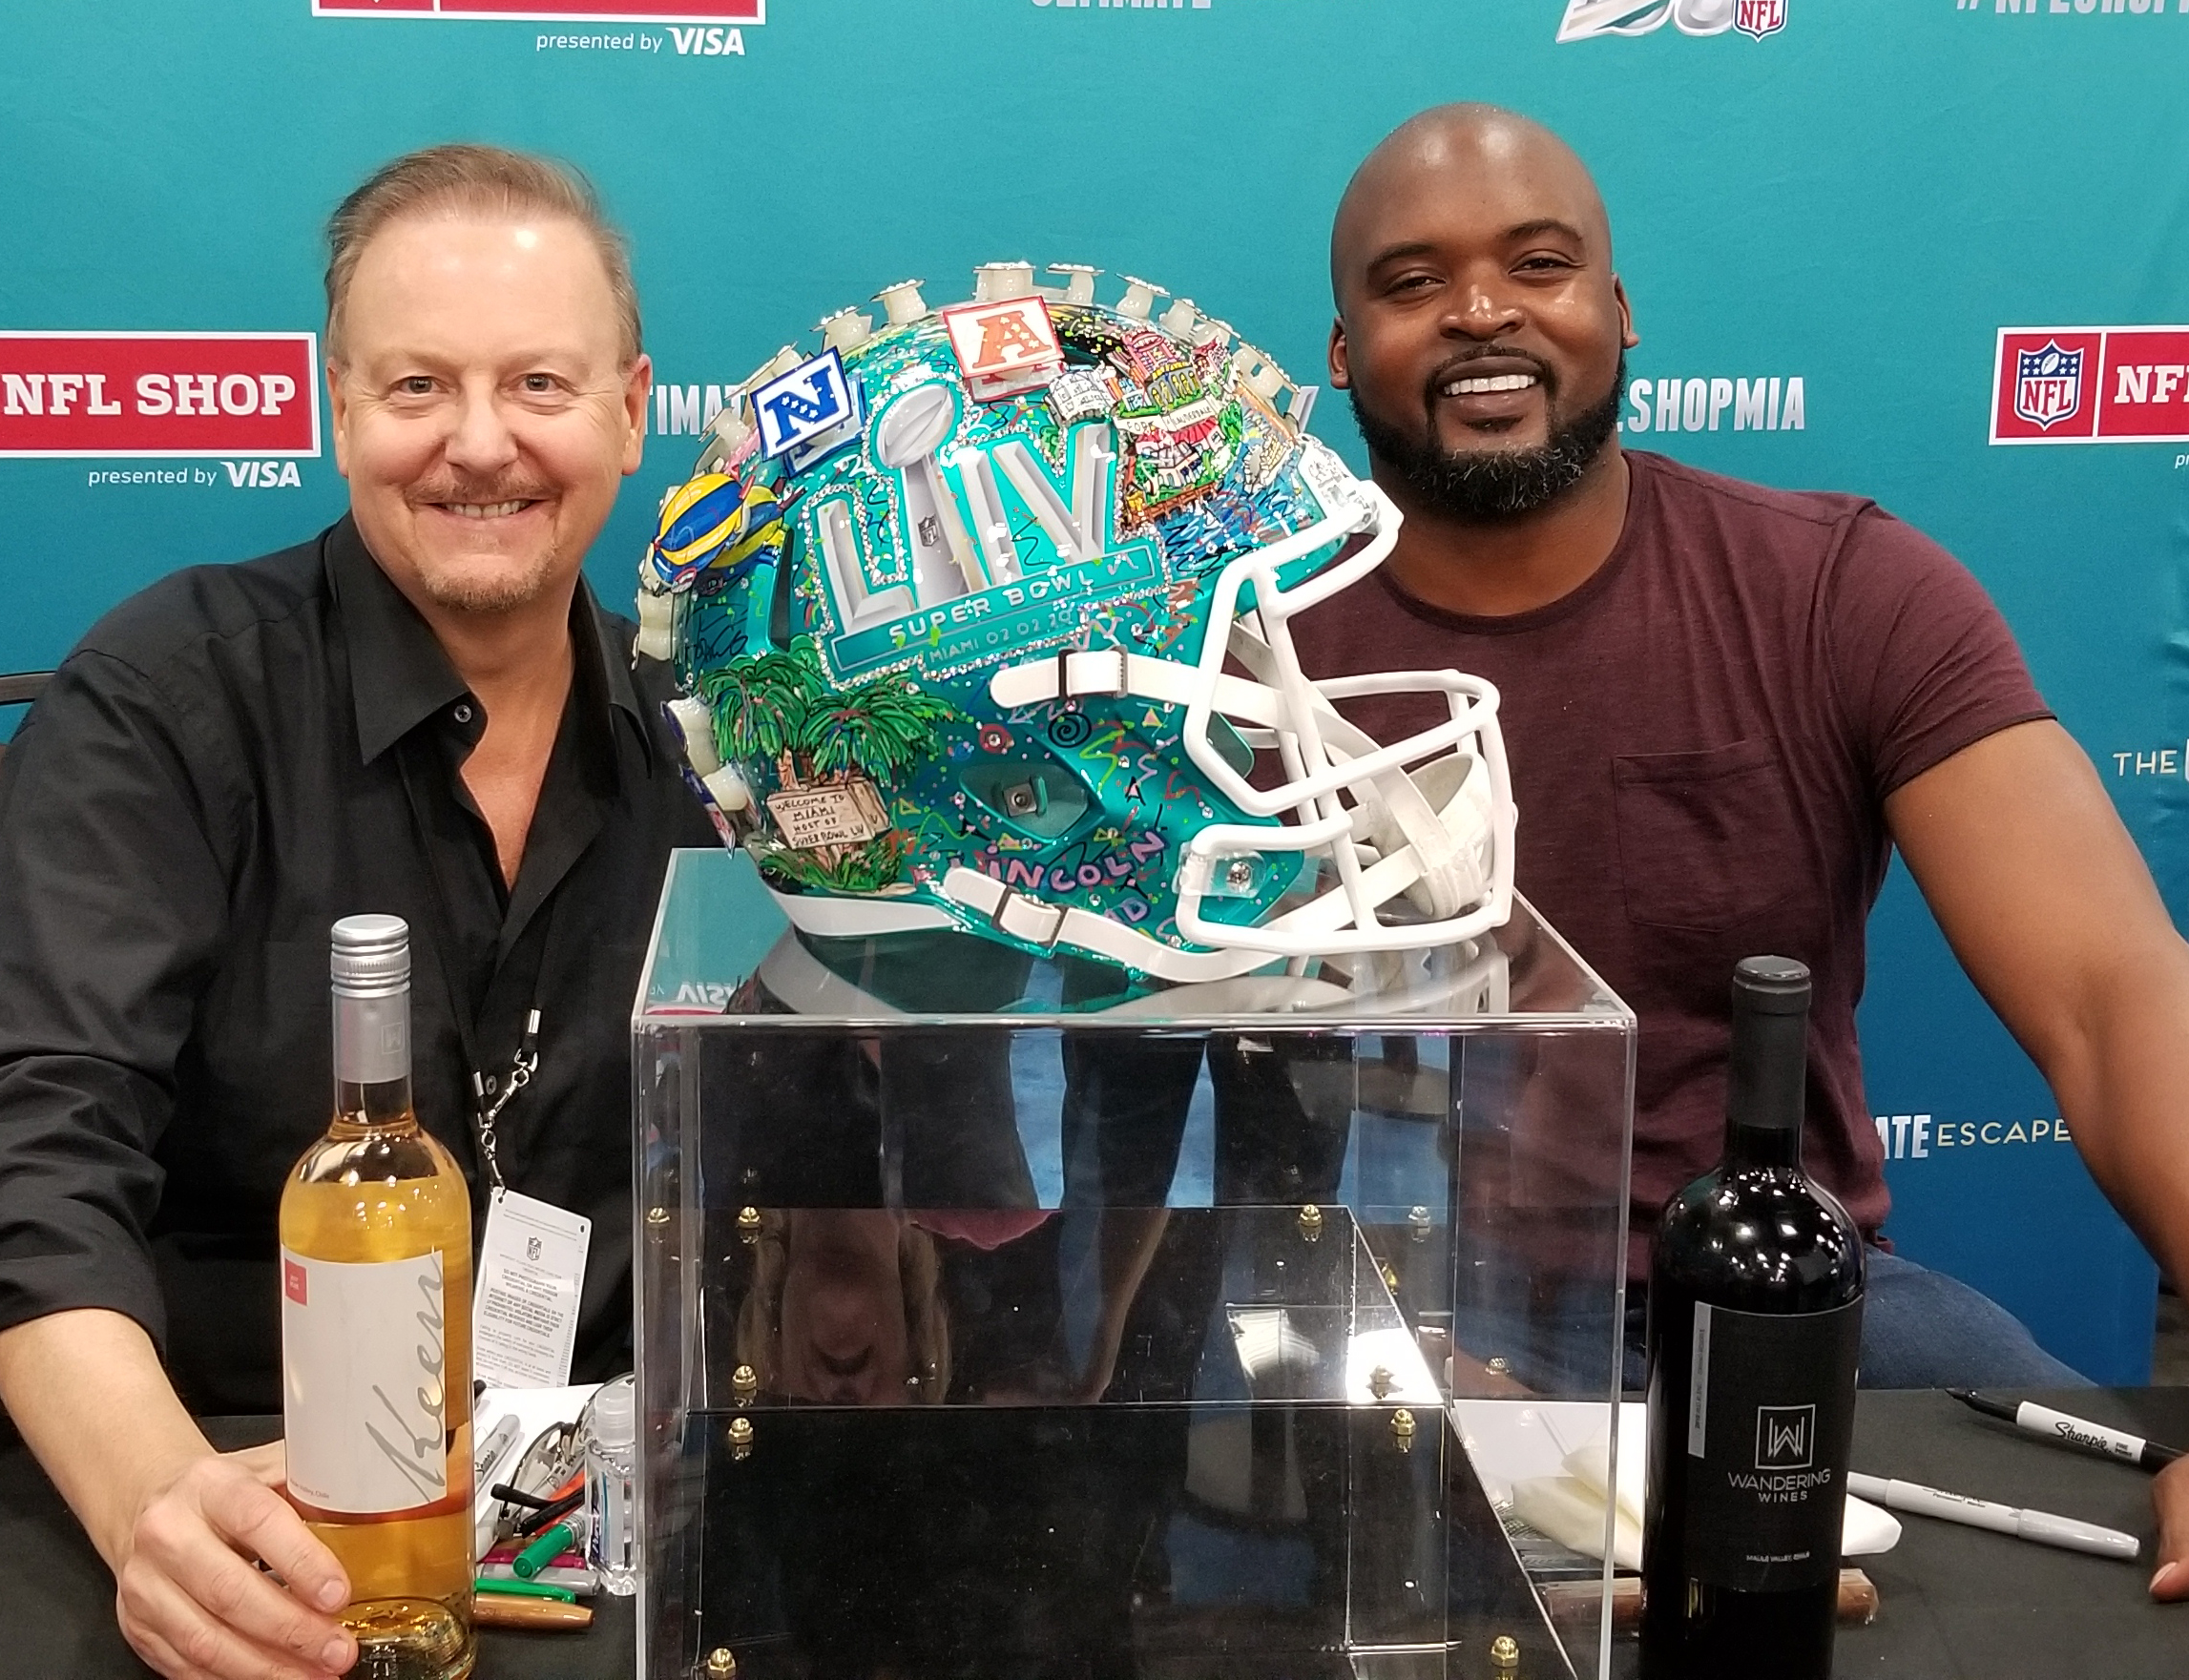 Charles Fazzino with Former NY Giant Mathias Kiwanuka, pictured with Super Bowl helmet and wine.